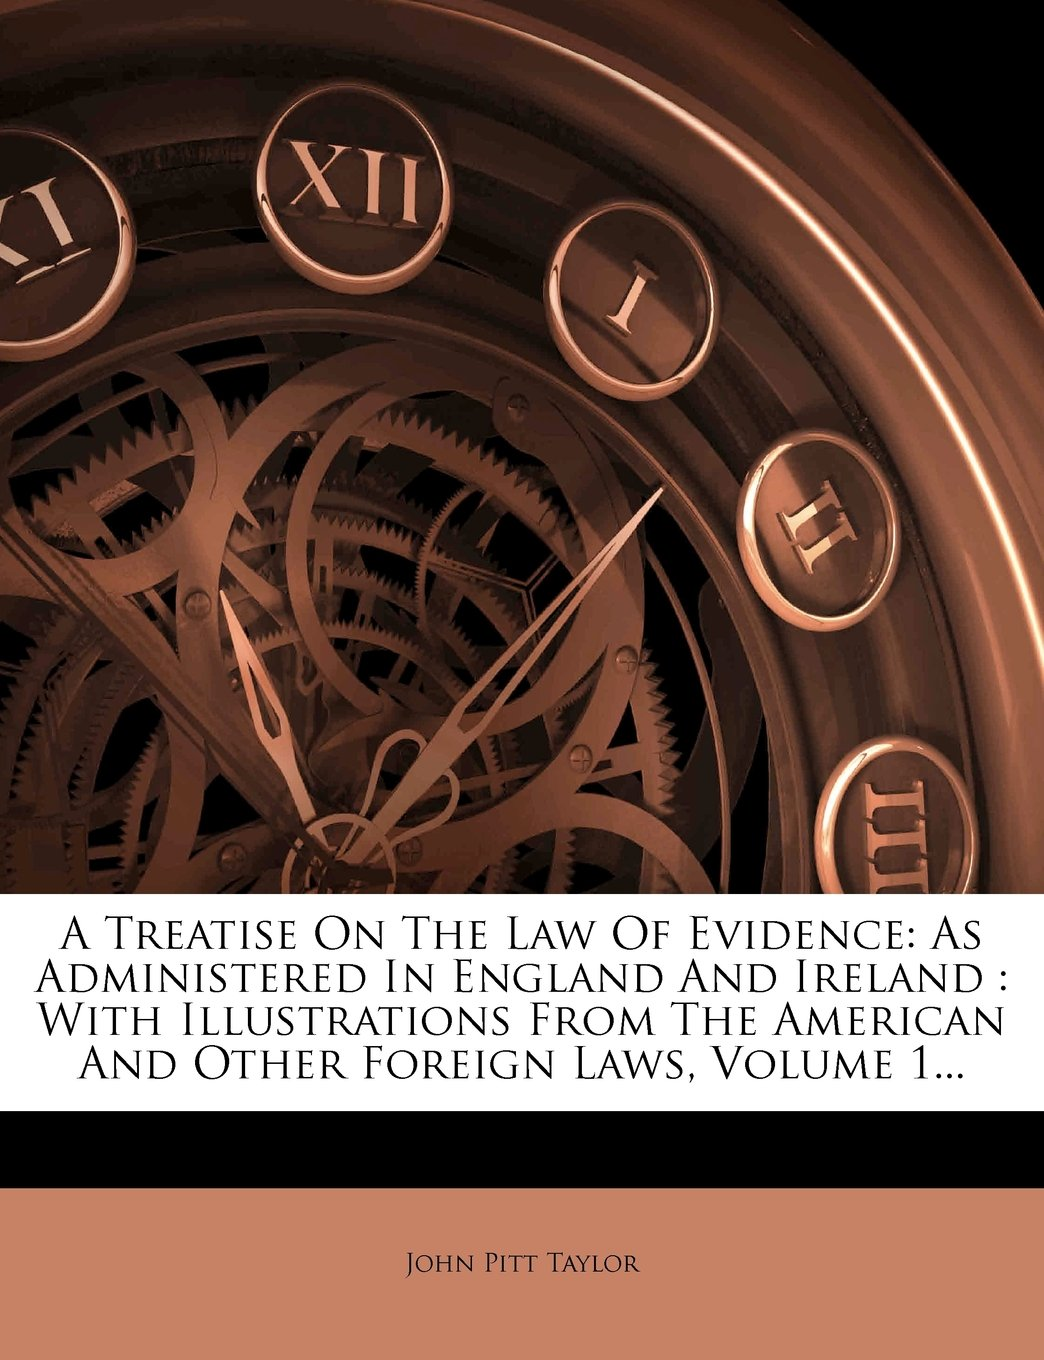 A Treatise on the Law of Evidence: As Administered in England and Ireland: With Illustrations from the American and Other Foreign Laws, Volume 1... pdf